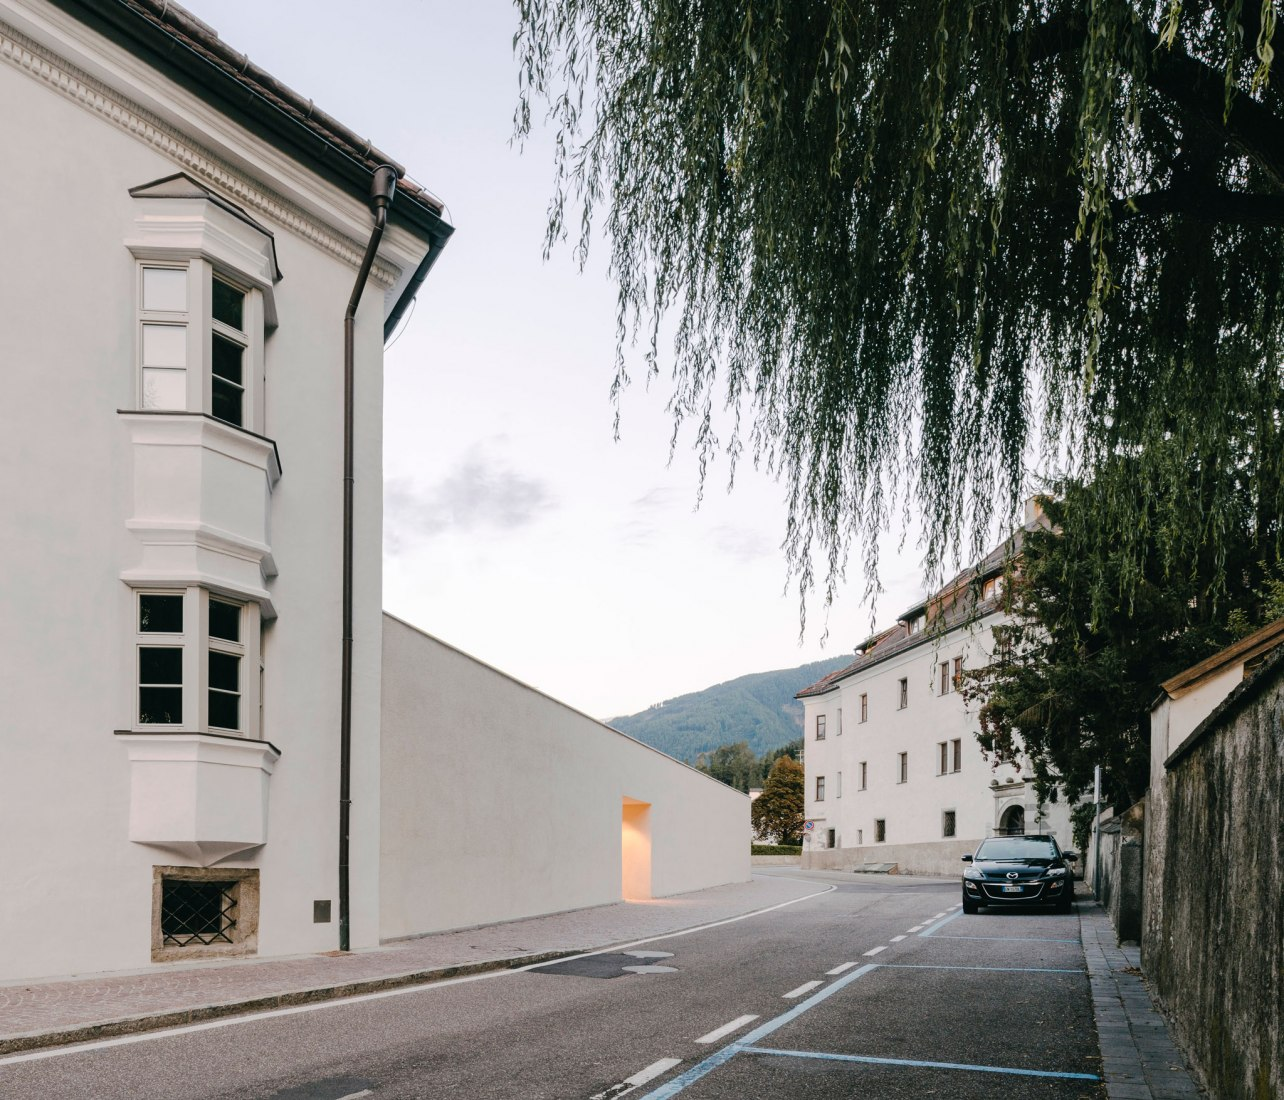 Entrance. Brunico School of Music by Barozzi & Veiga. Photograph by Simon Menges